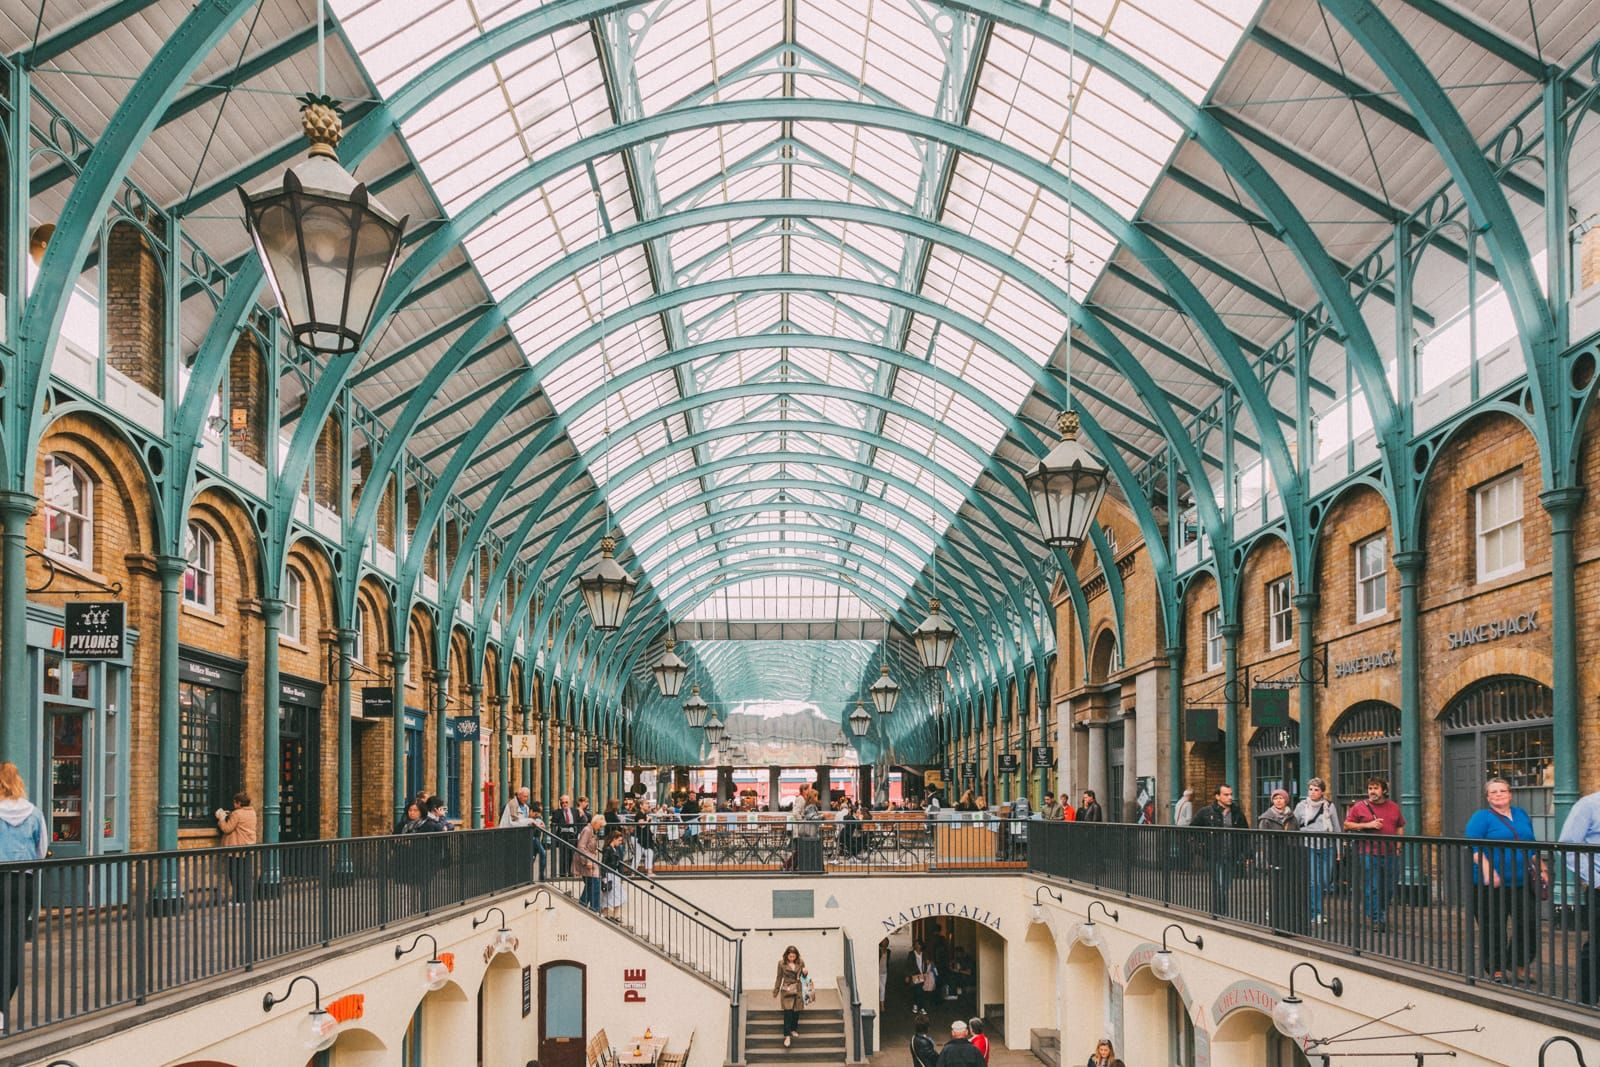 The 12 Best Markets In London You Should Visit - Hand Luggage Only - Travel, Food & Photography Blog https://handluggageonly.co.uk/2018/01/09/12-best-markets-london-visit/